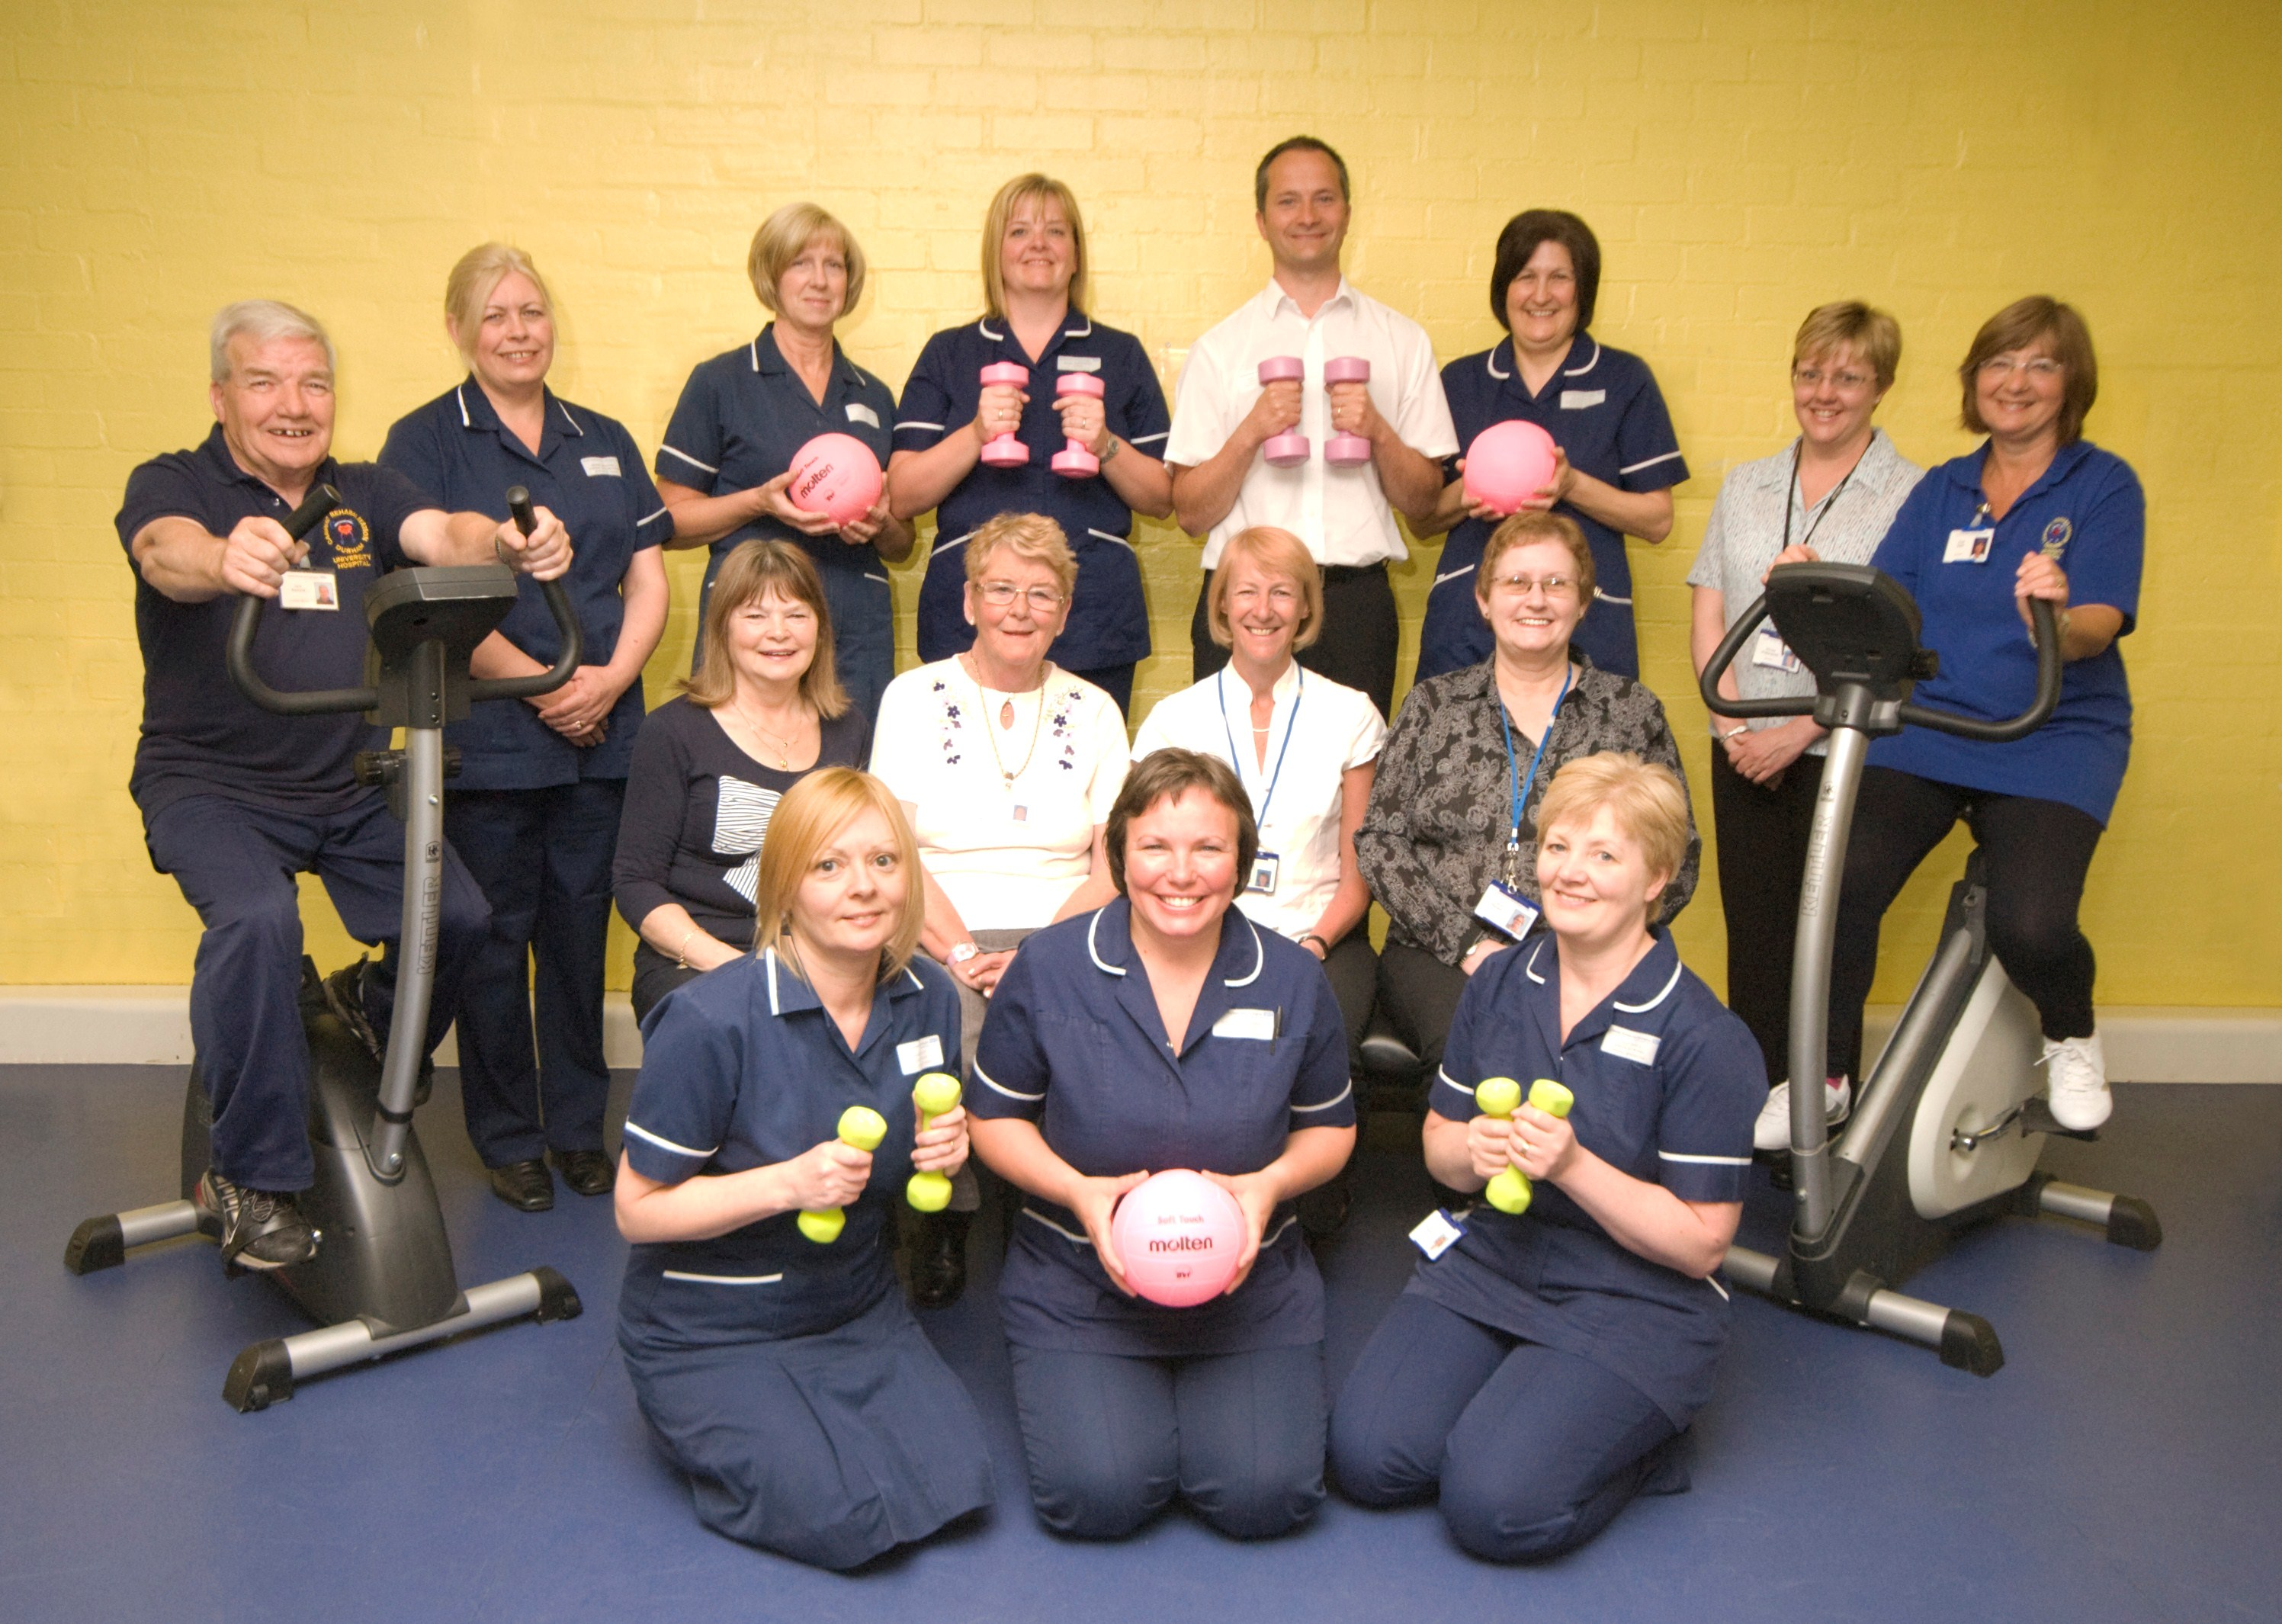 Cardiac Rehab team